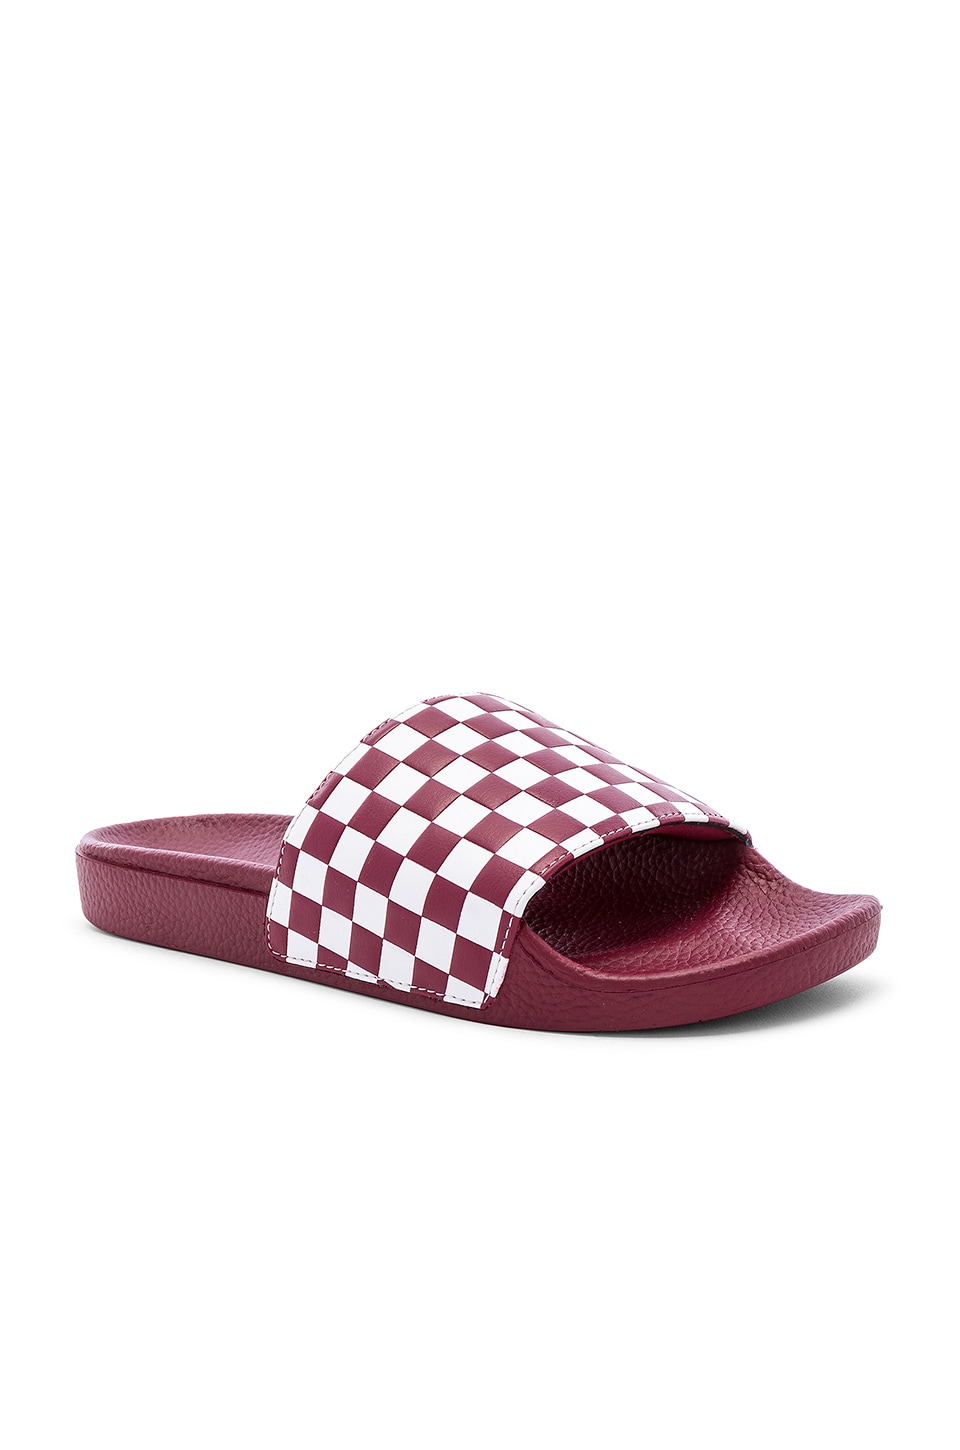 Vans Checkerboard Slides in Rhumba Red & White